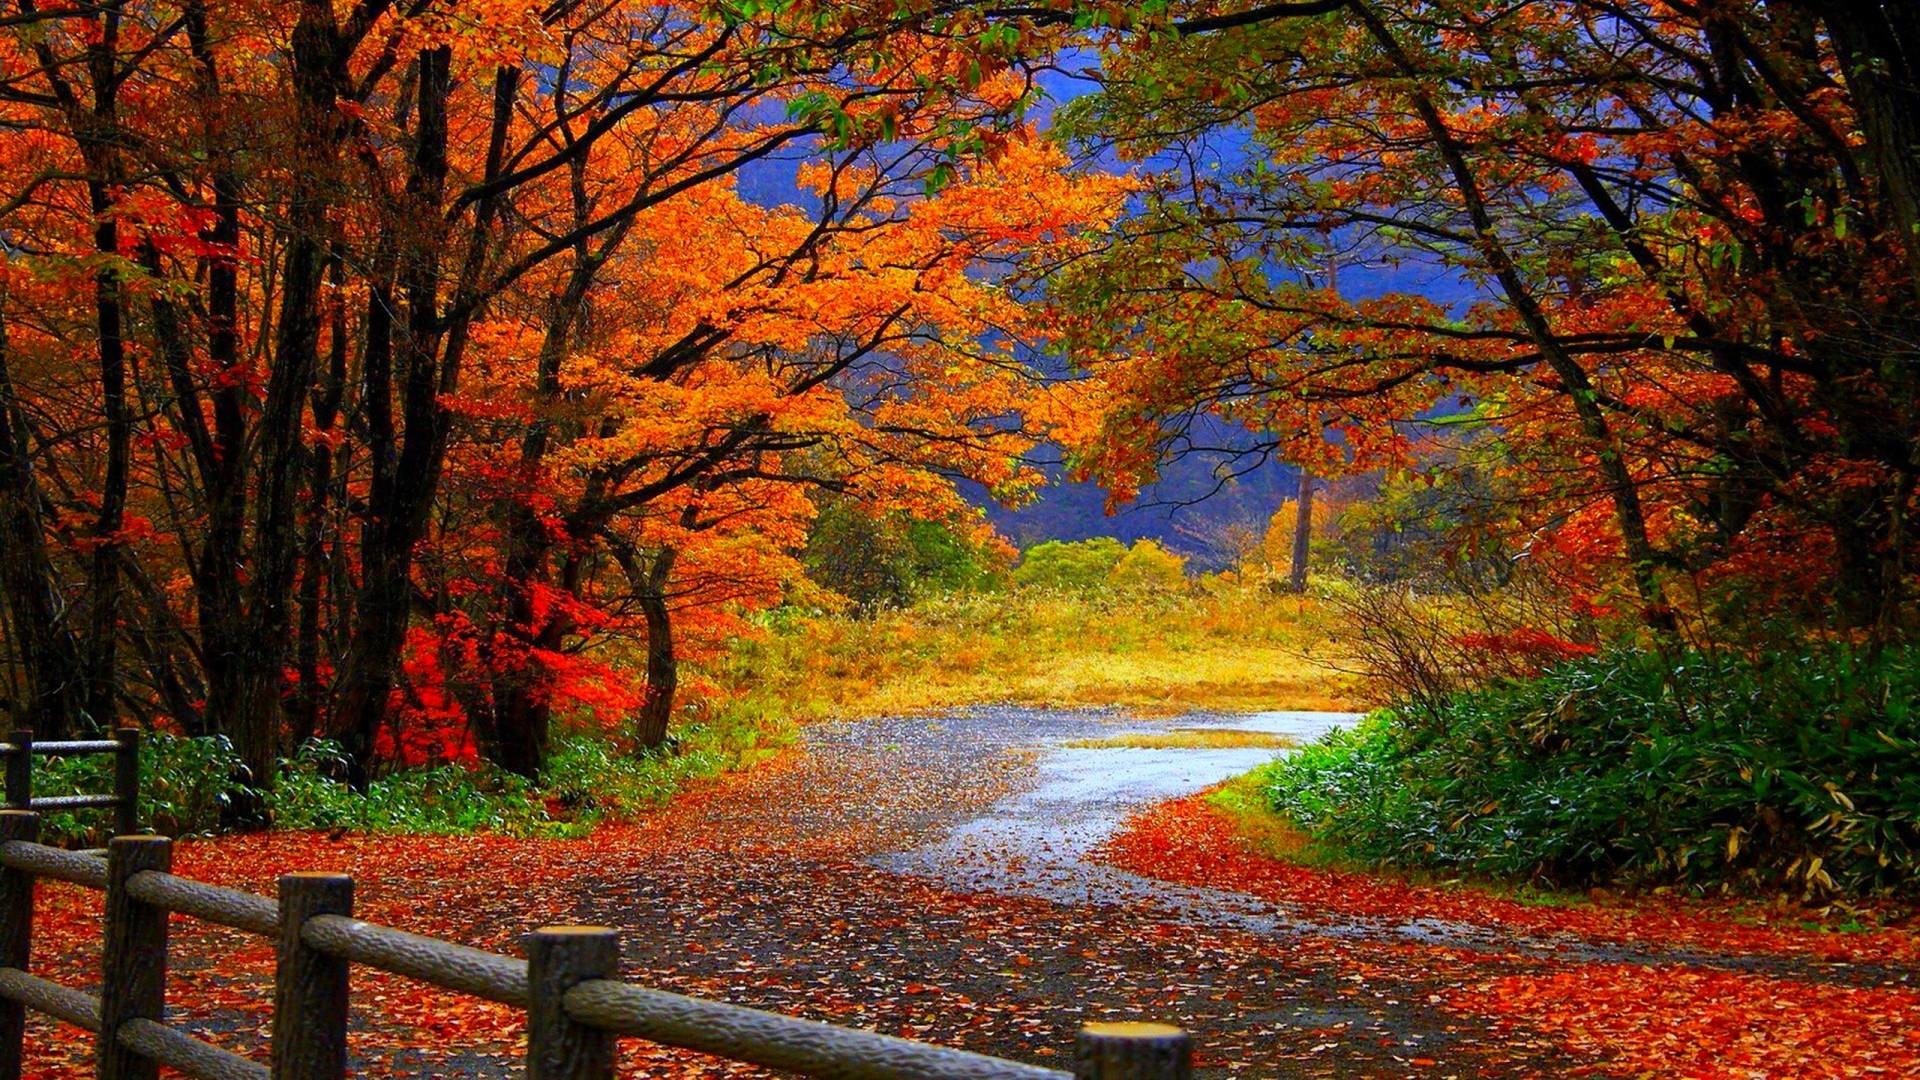 Wallpaper Scenes Adorable Desktop Wallpaper Fall Scenes ·①